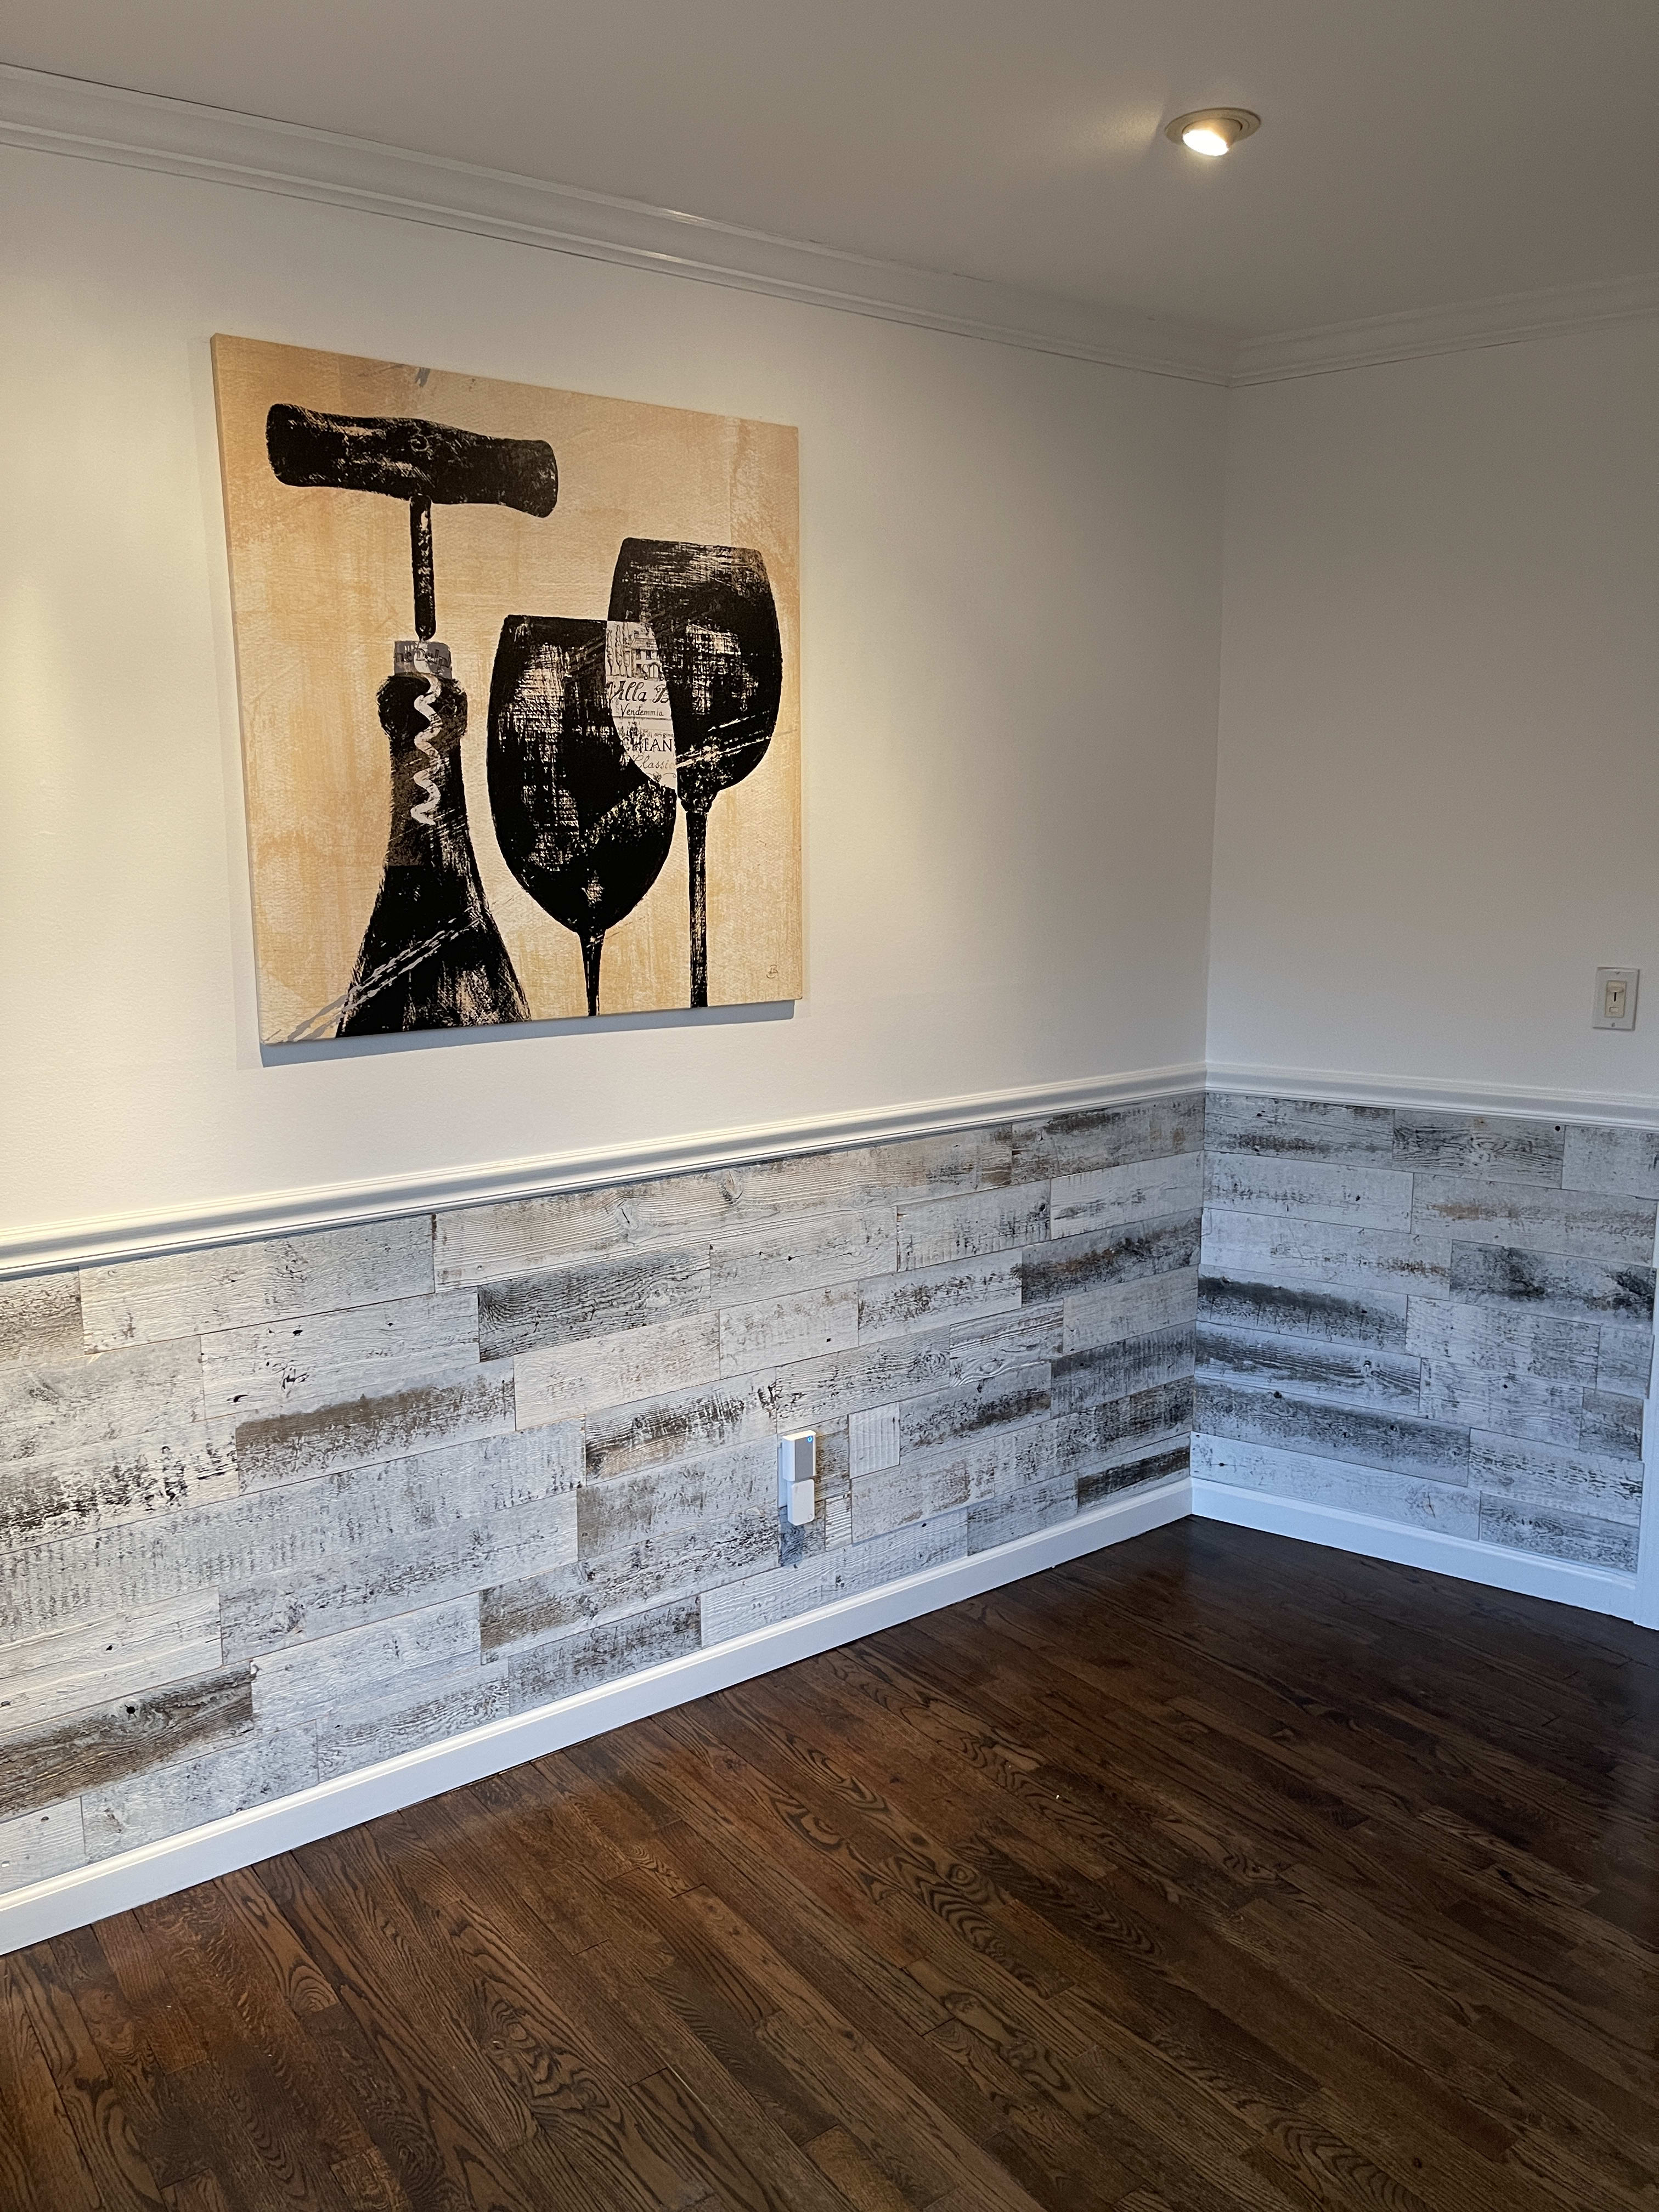 Reclaimed weathered wood white peel and stick wood plank wainscot in dining room.